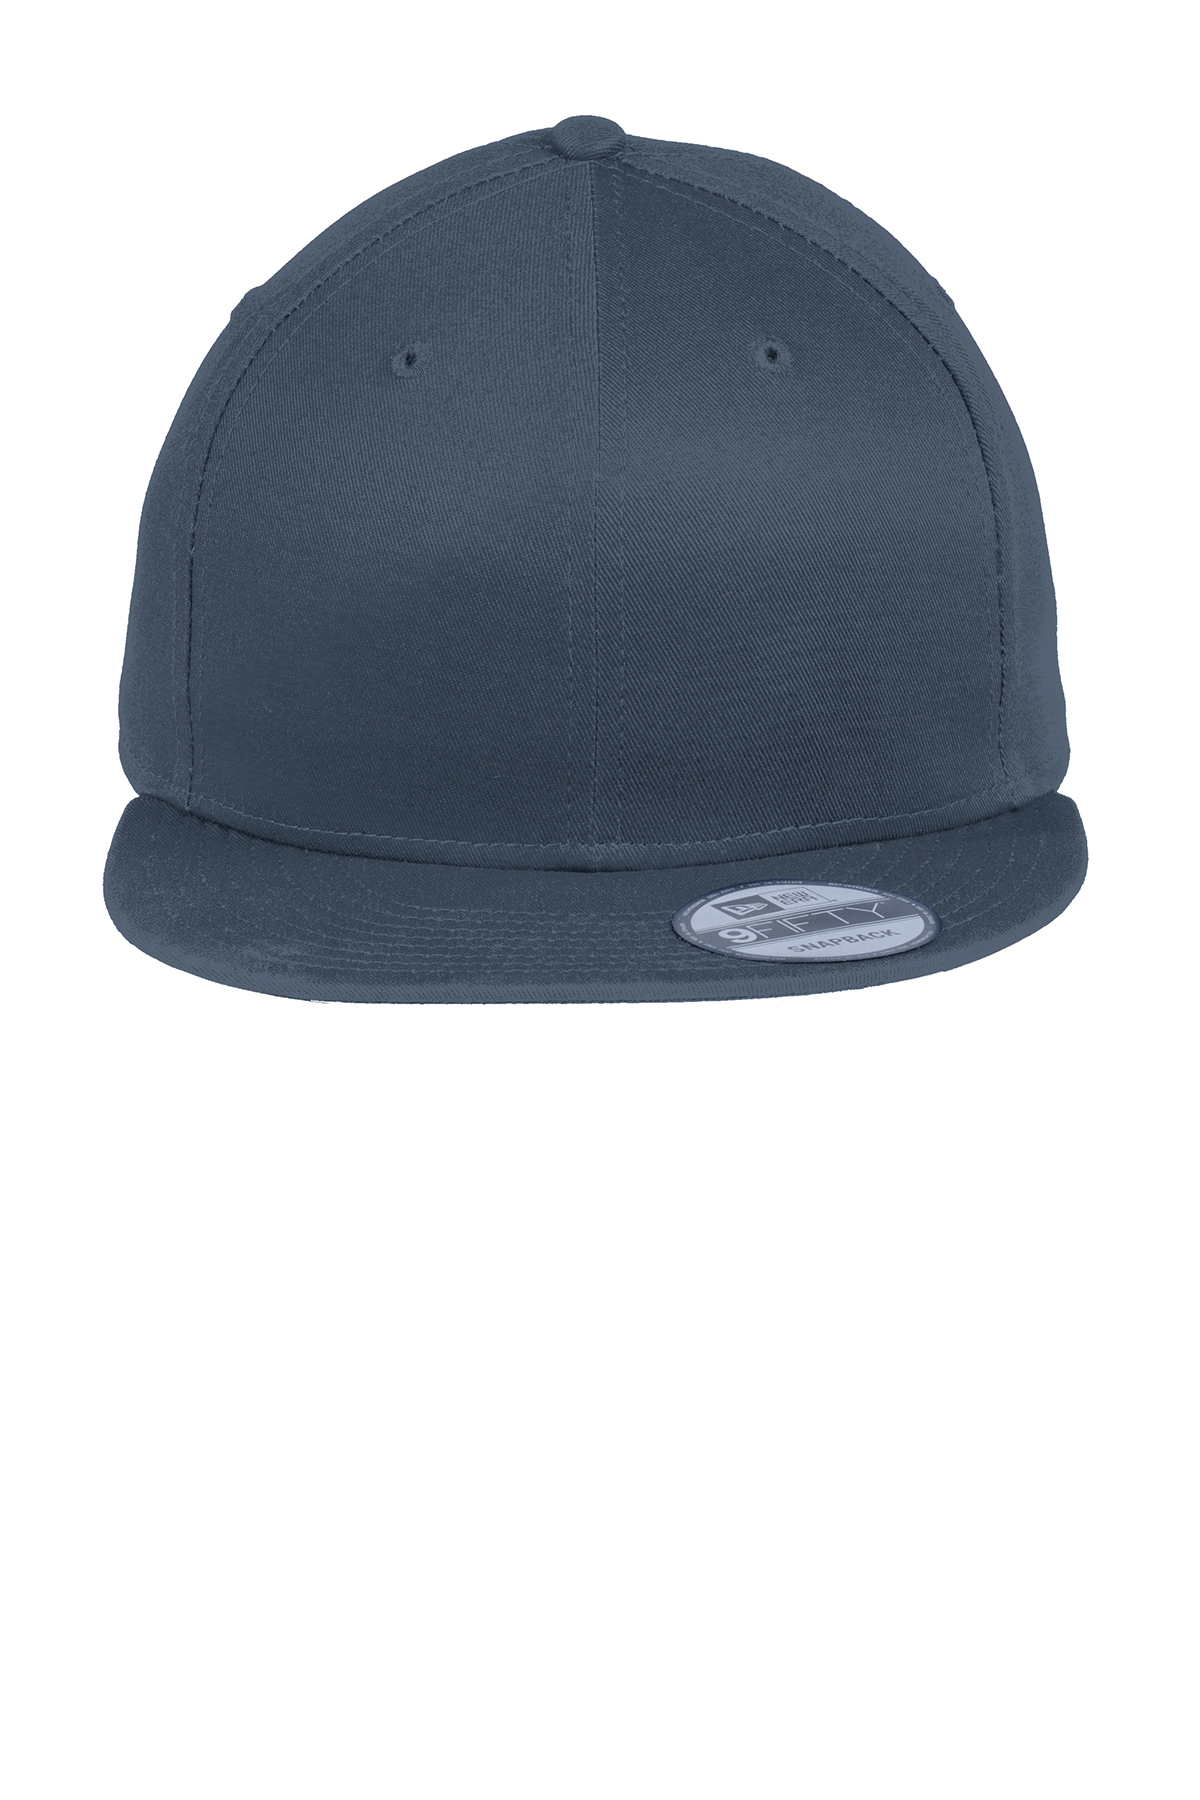 ... New Era® - Flat Bill Snapback Cap. A maximum of 8 logos have been  uploaded. Please remove a logo from My Logos to continue 38a53a58f8a0